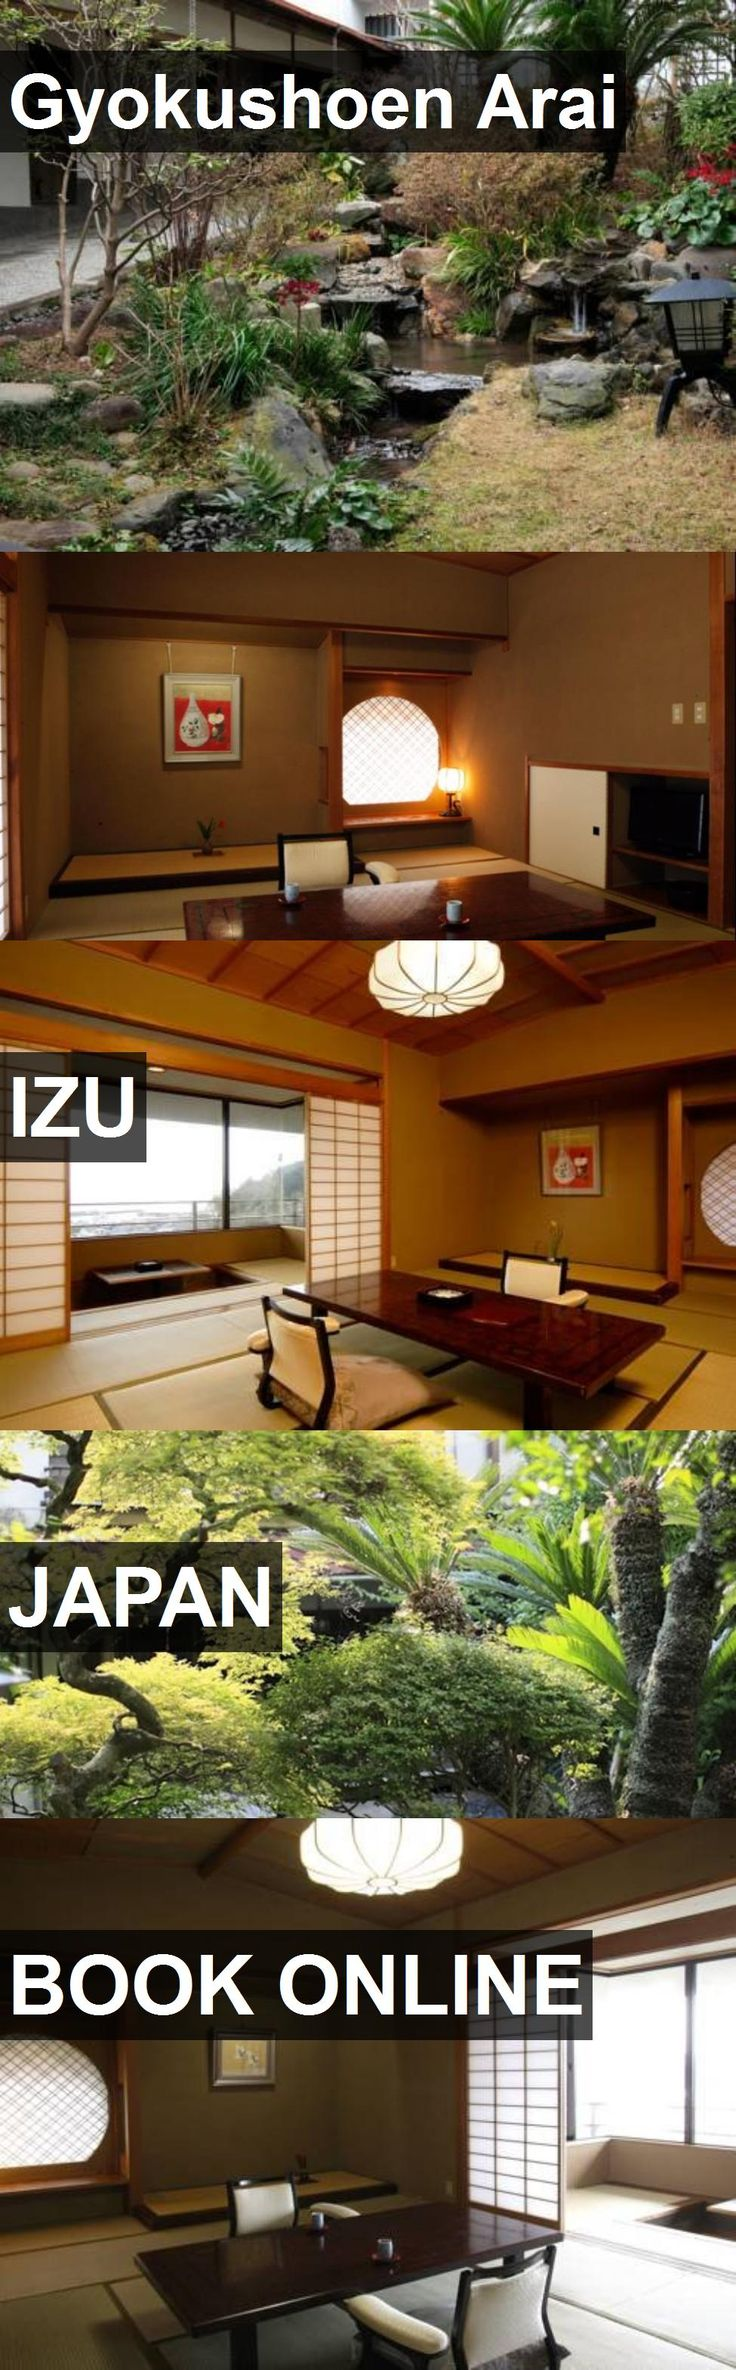 Hotel Gyokushoen Arai in Izu, Japan. For more information, photos, reviews and best prices please follow the link. #Japan #Izu #travel #vacation #hotel